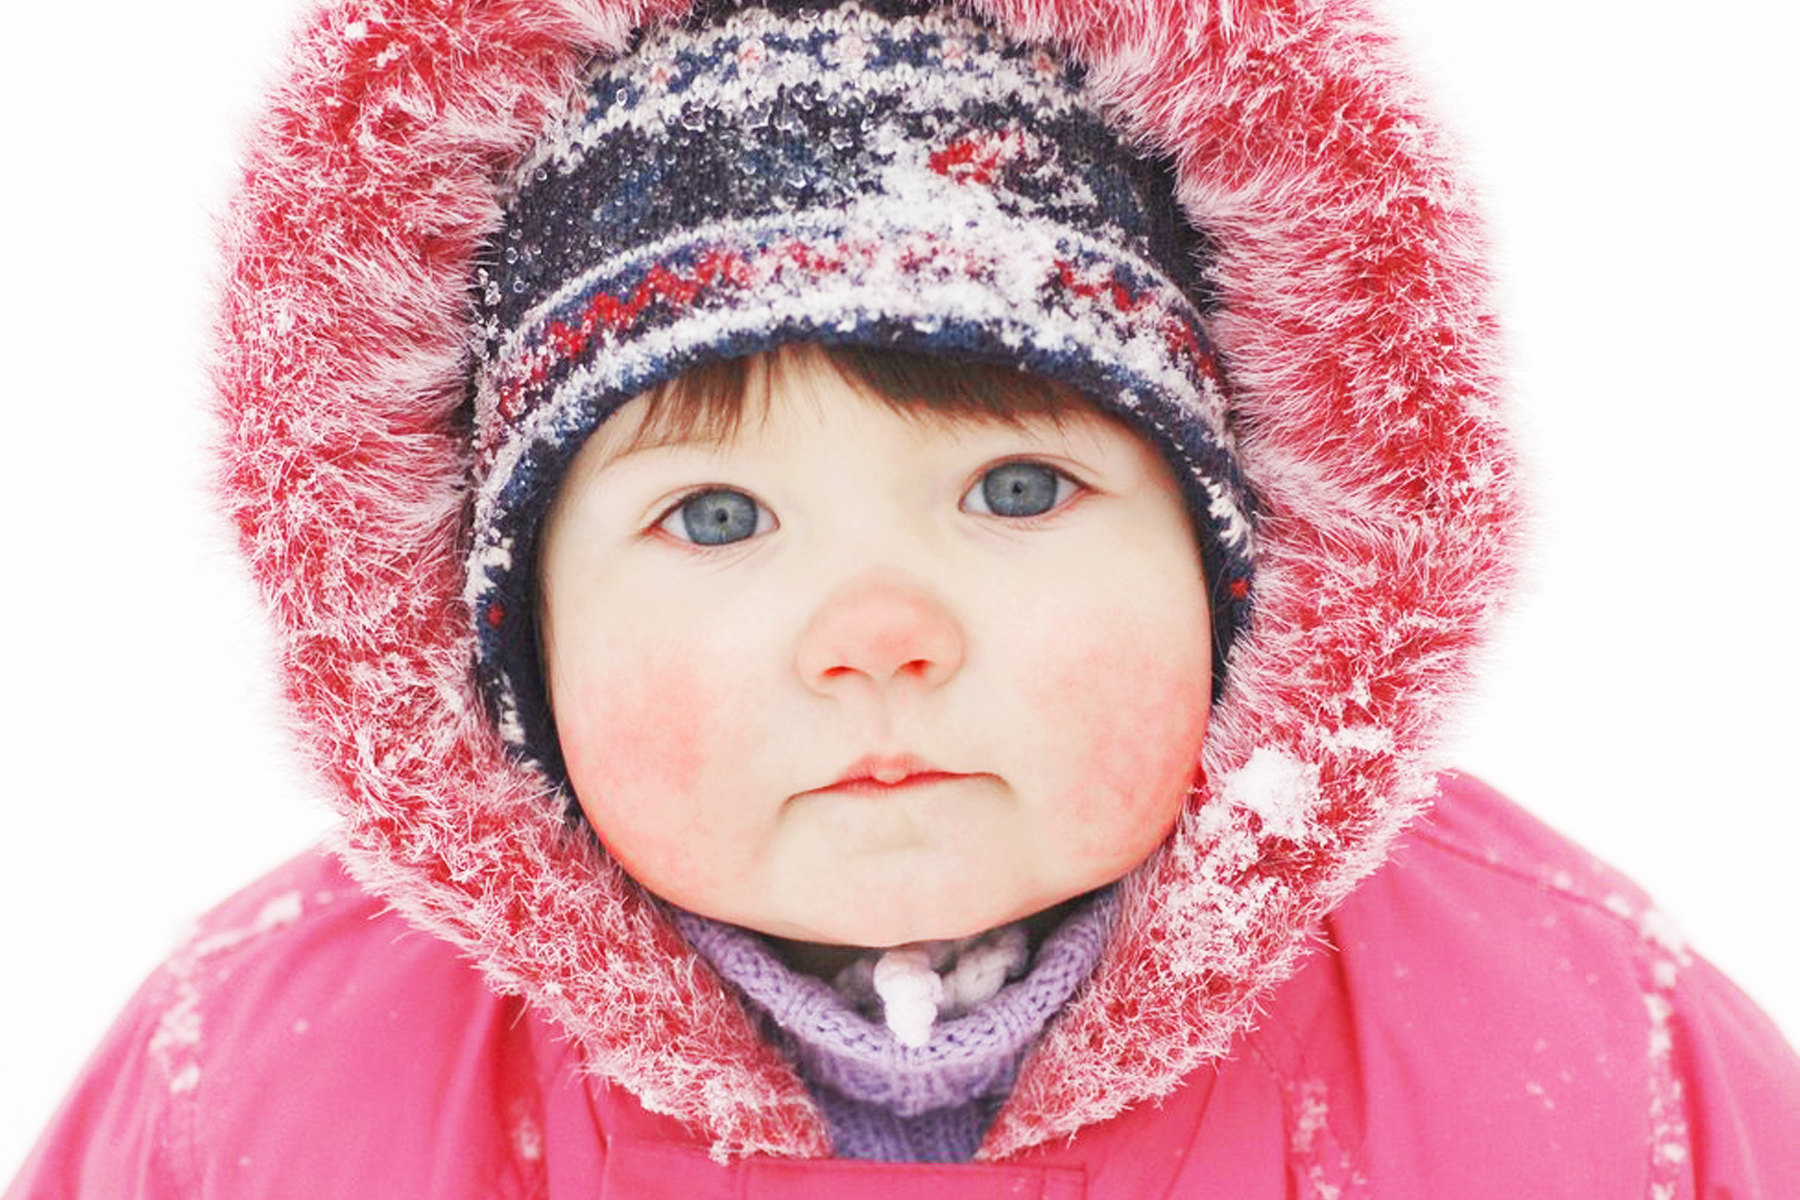 Baby with red face from cold and snow